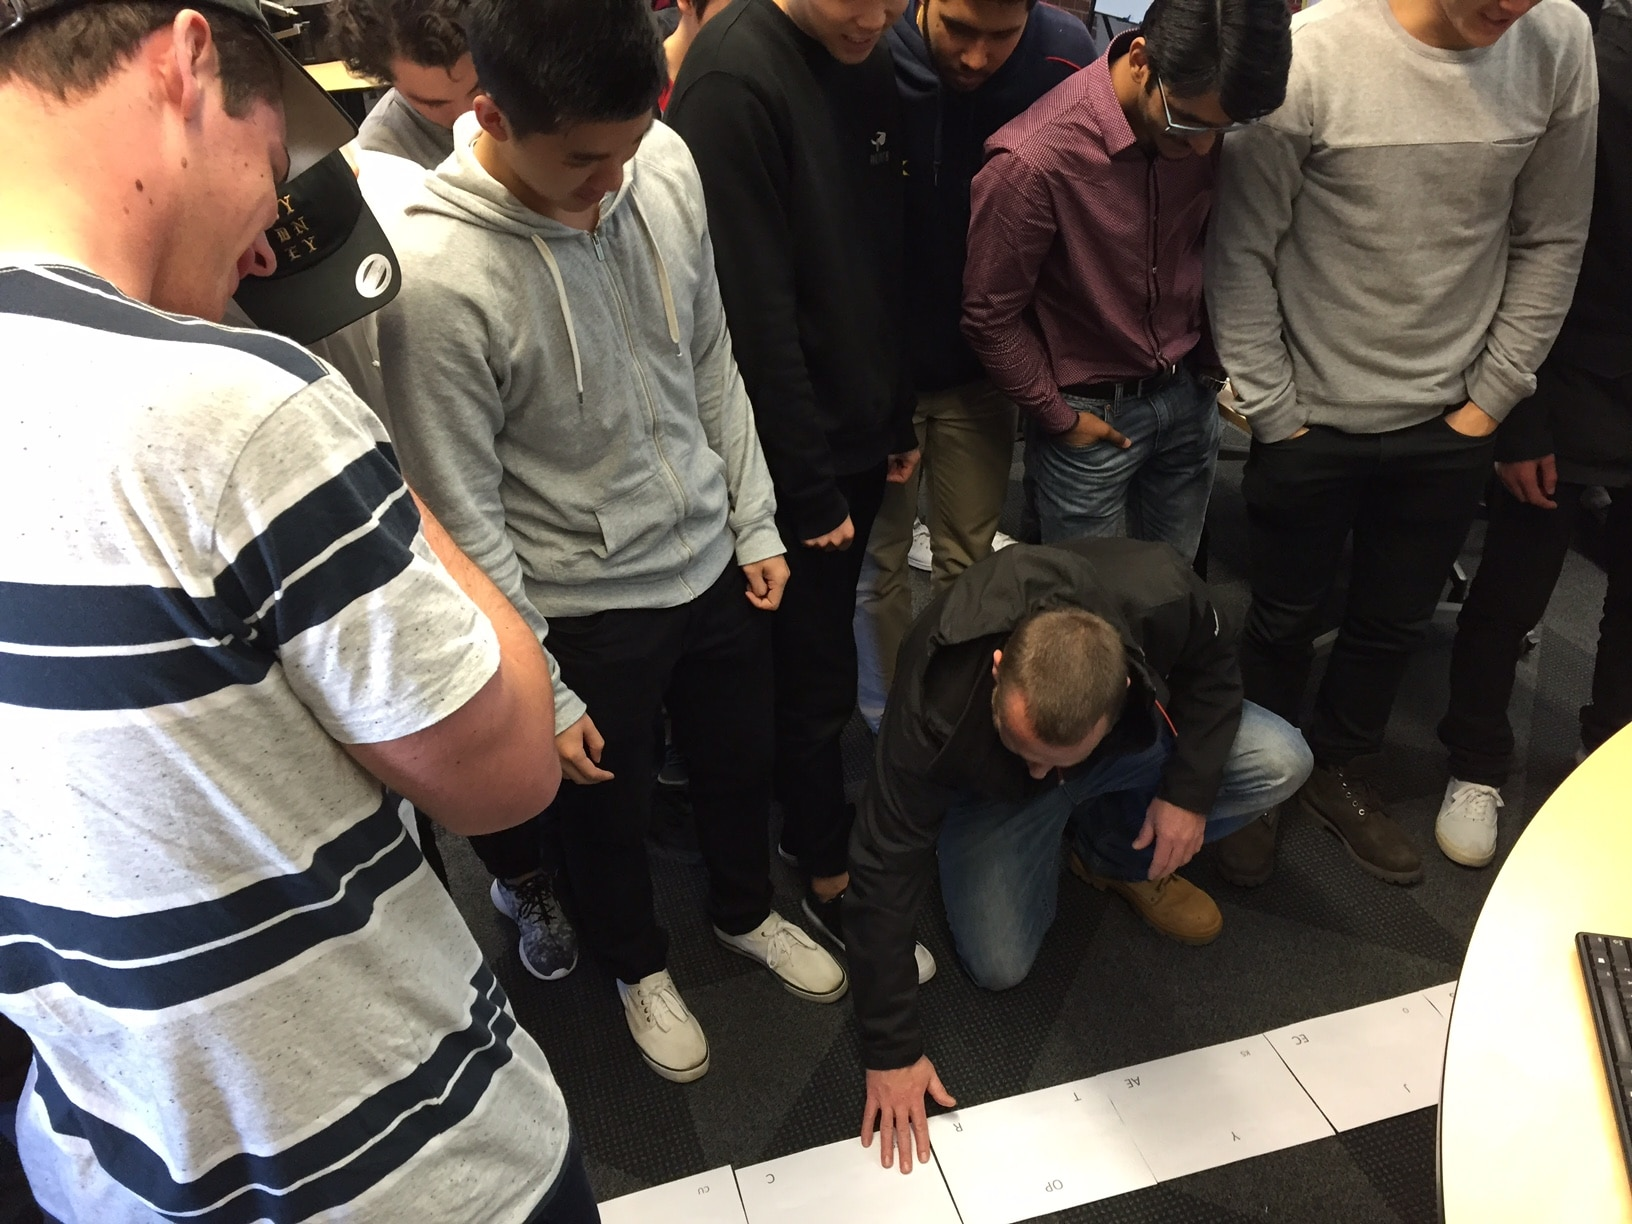 Above shows students attempting to solve the final riddle as a whole class after solving their respective group puzzles.